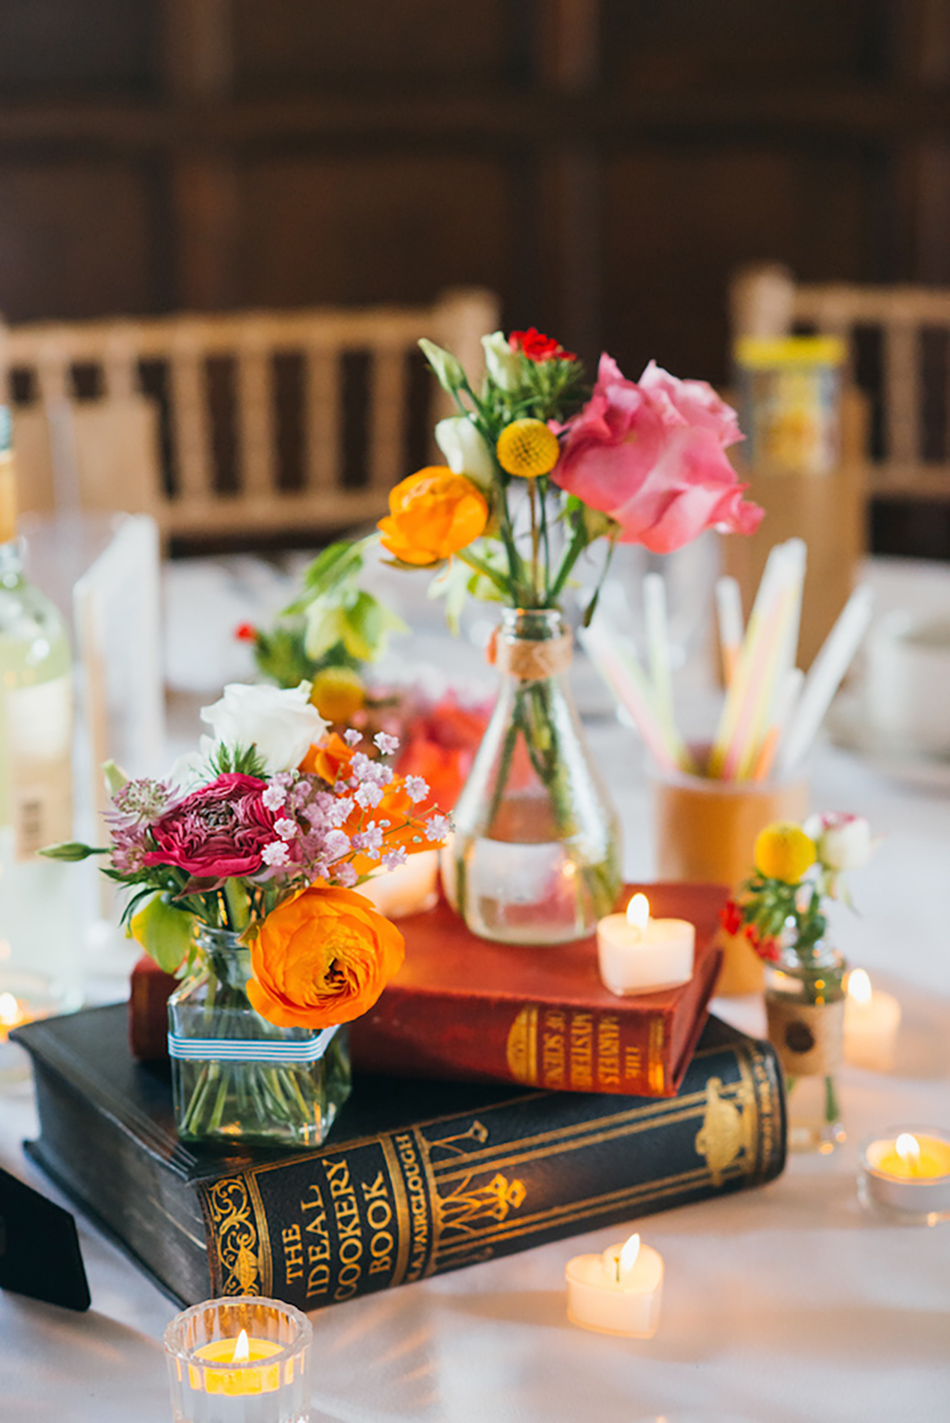 Sure, standard table numbers will get wedding guests to their seats, but why be ordinary? Express your personality with creative table names, or upgrade your style with unique ways to display the classic numbers. These 50 innovative table number ideas will inspire you to take your table décor from.